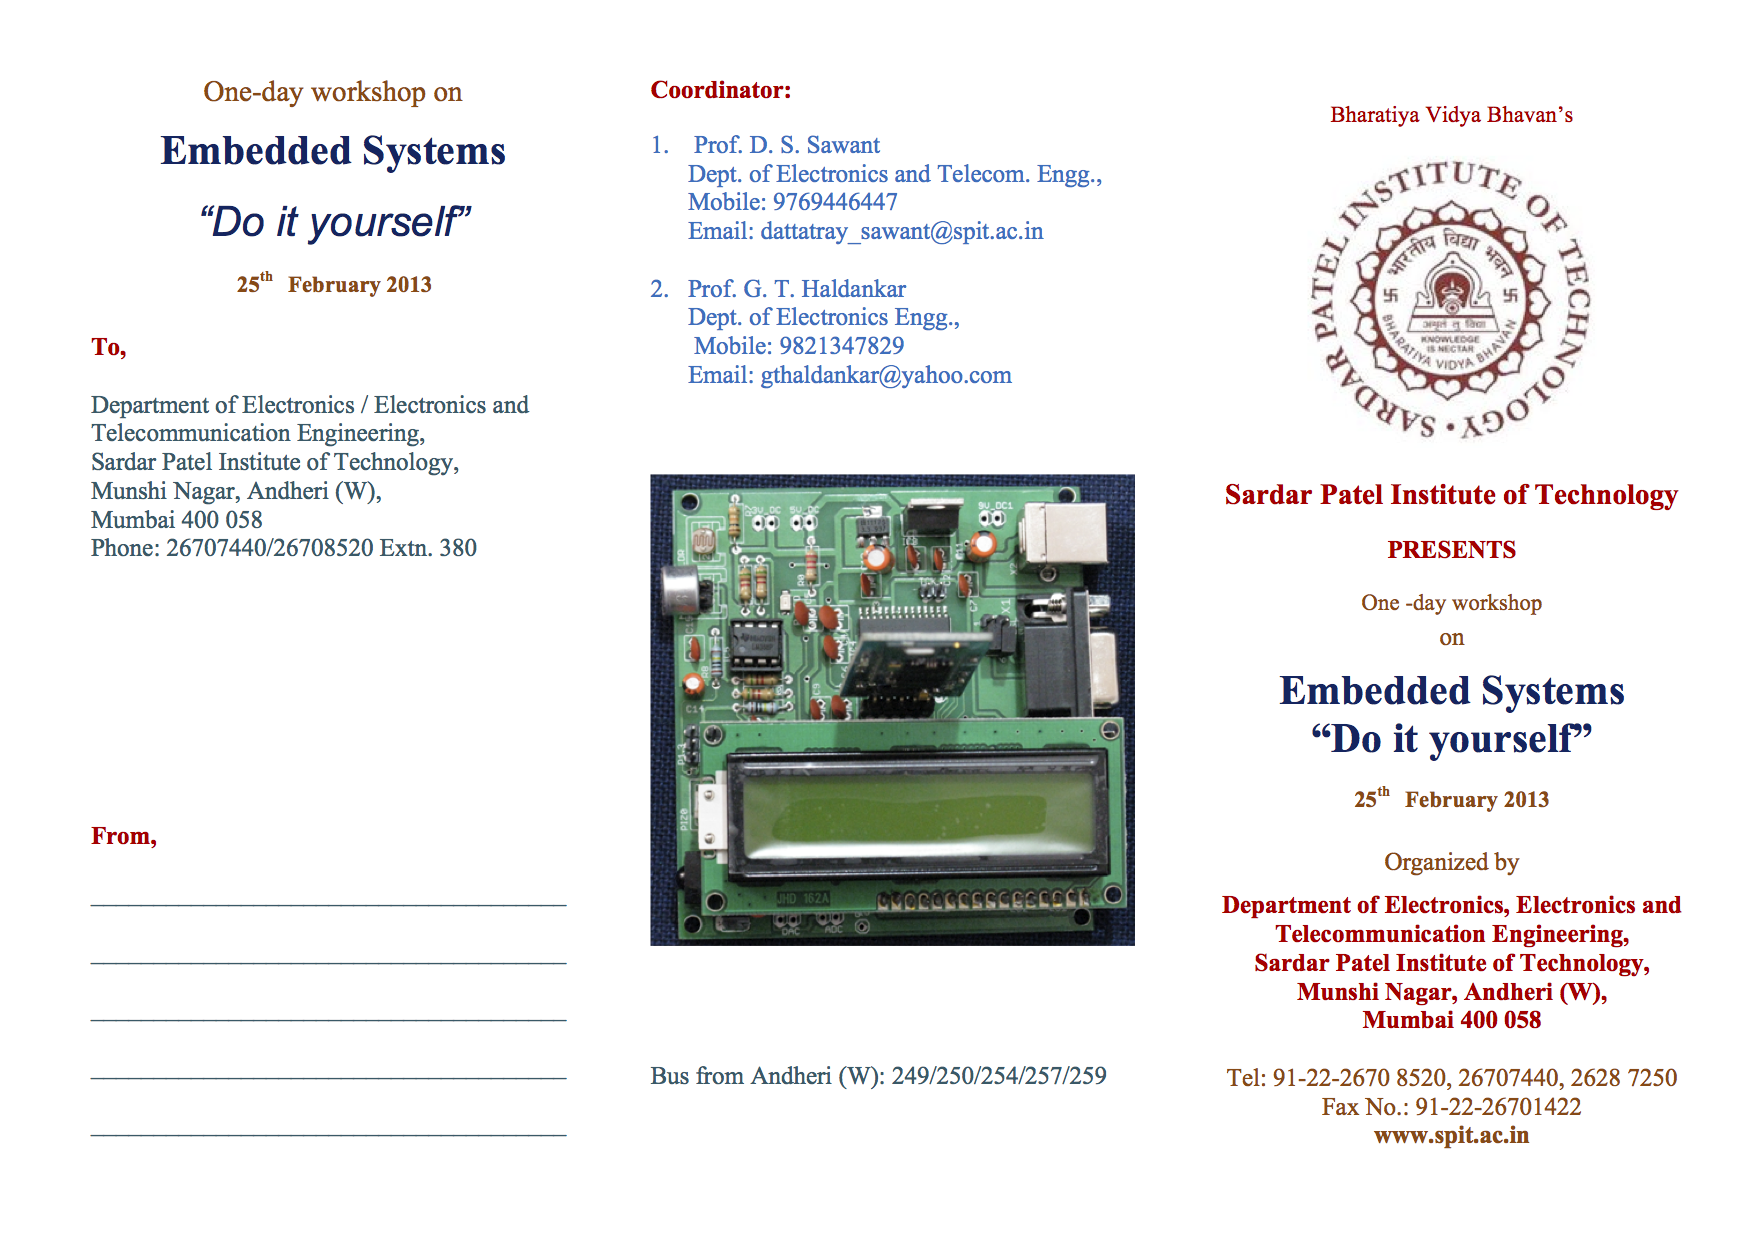 One day workshop on embedded systems do it yourself 25th february download embedded systems do it yourself brochure pdf solutioingenieria Gallery